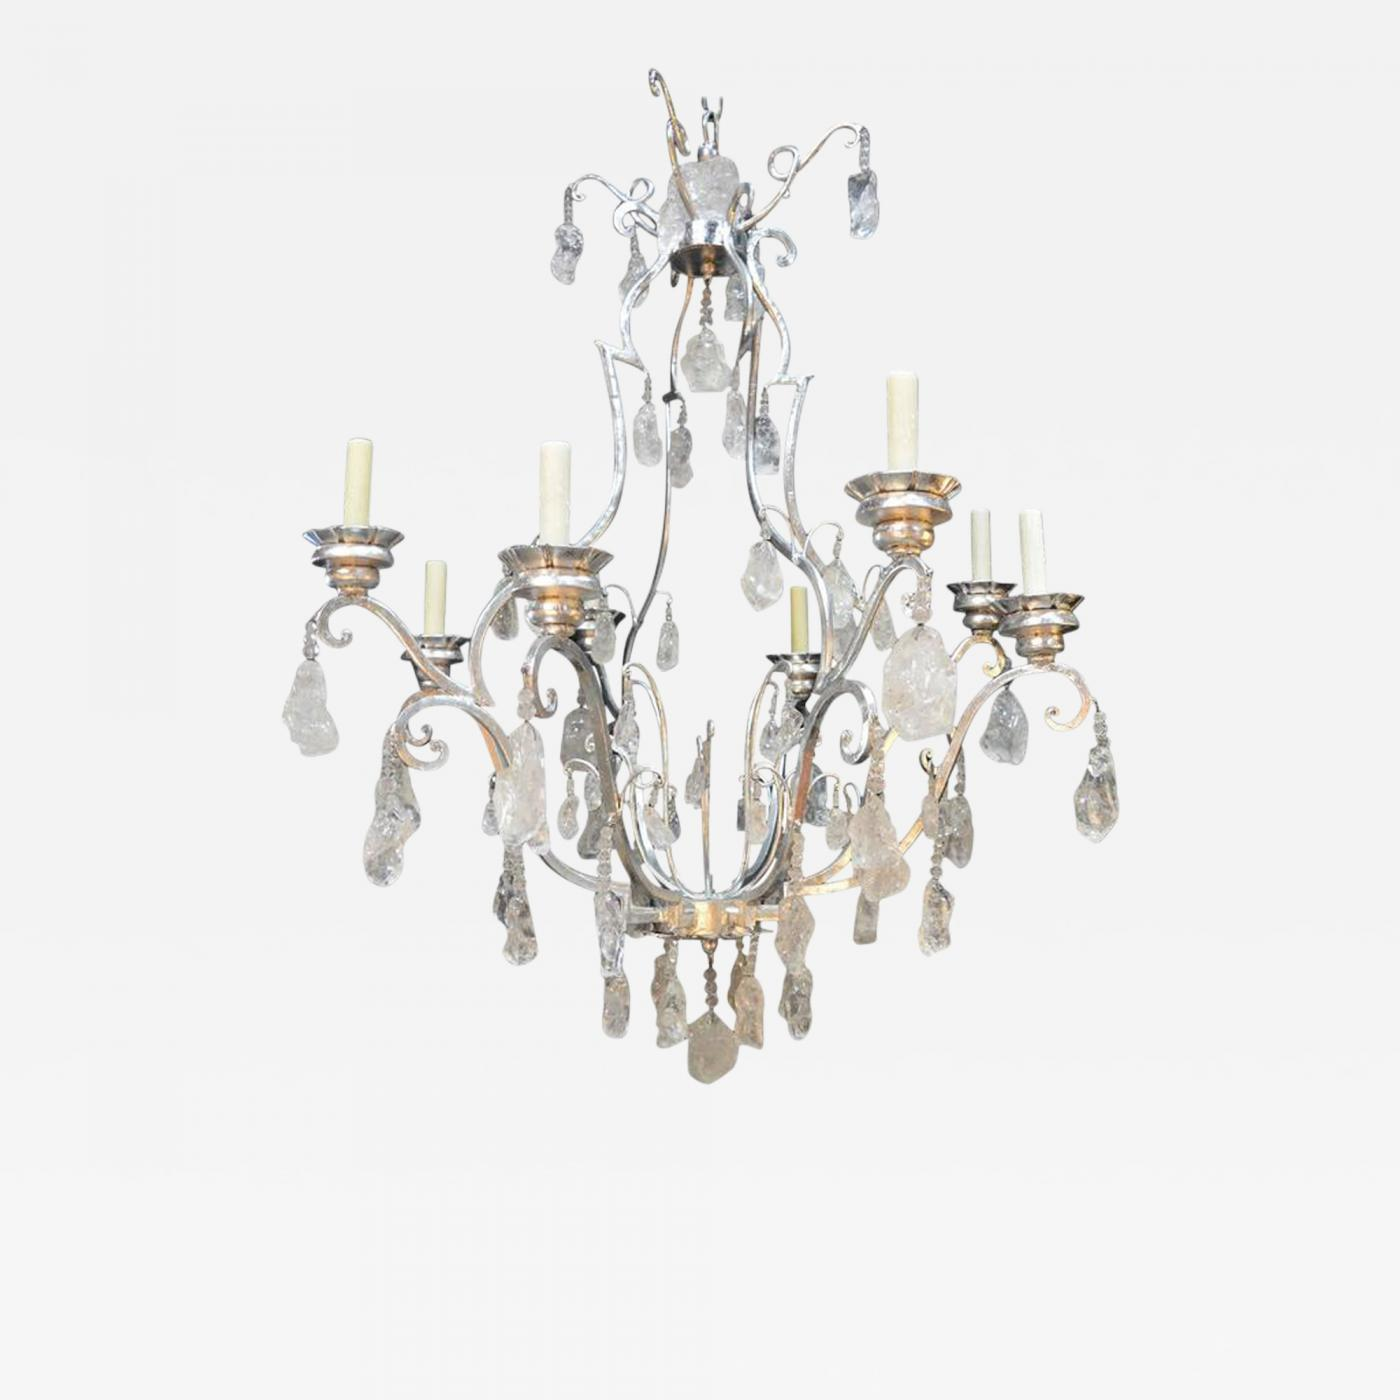 Free Form Rock Crystal Chandelier